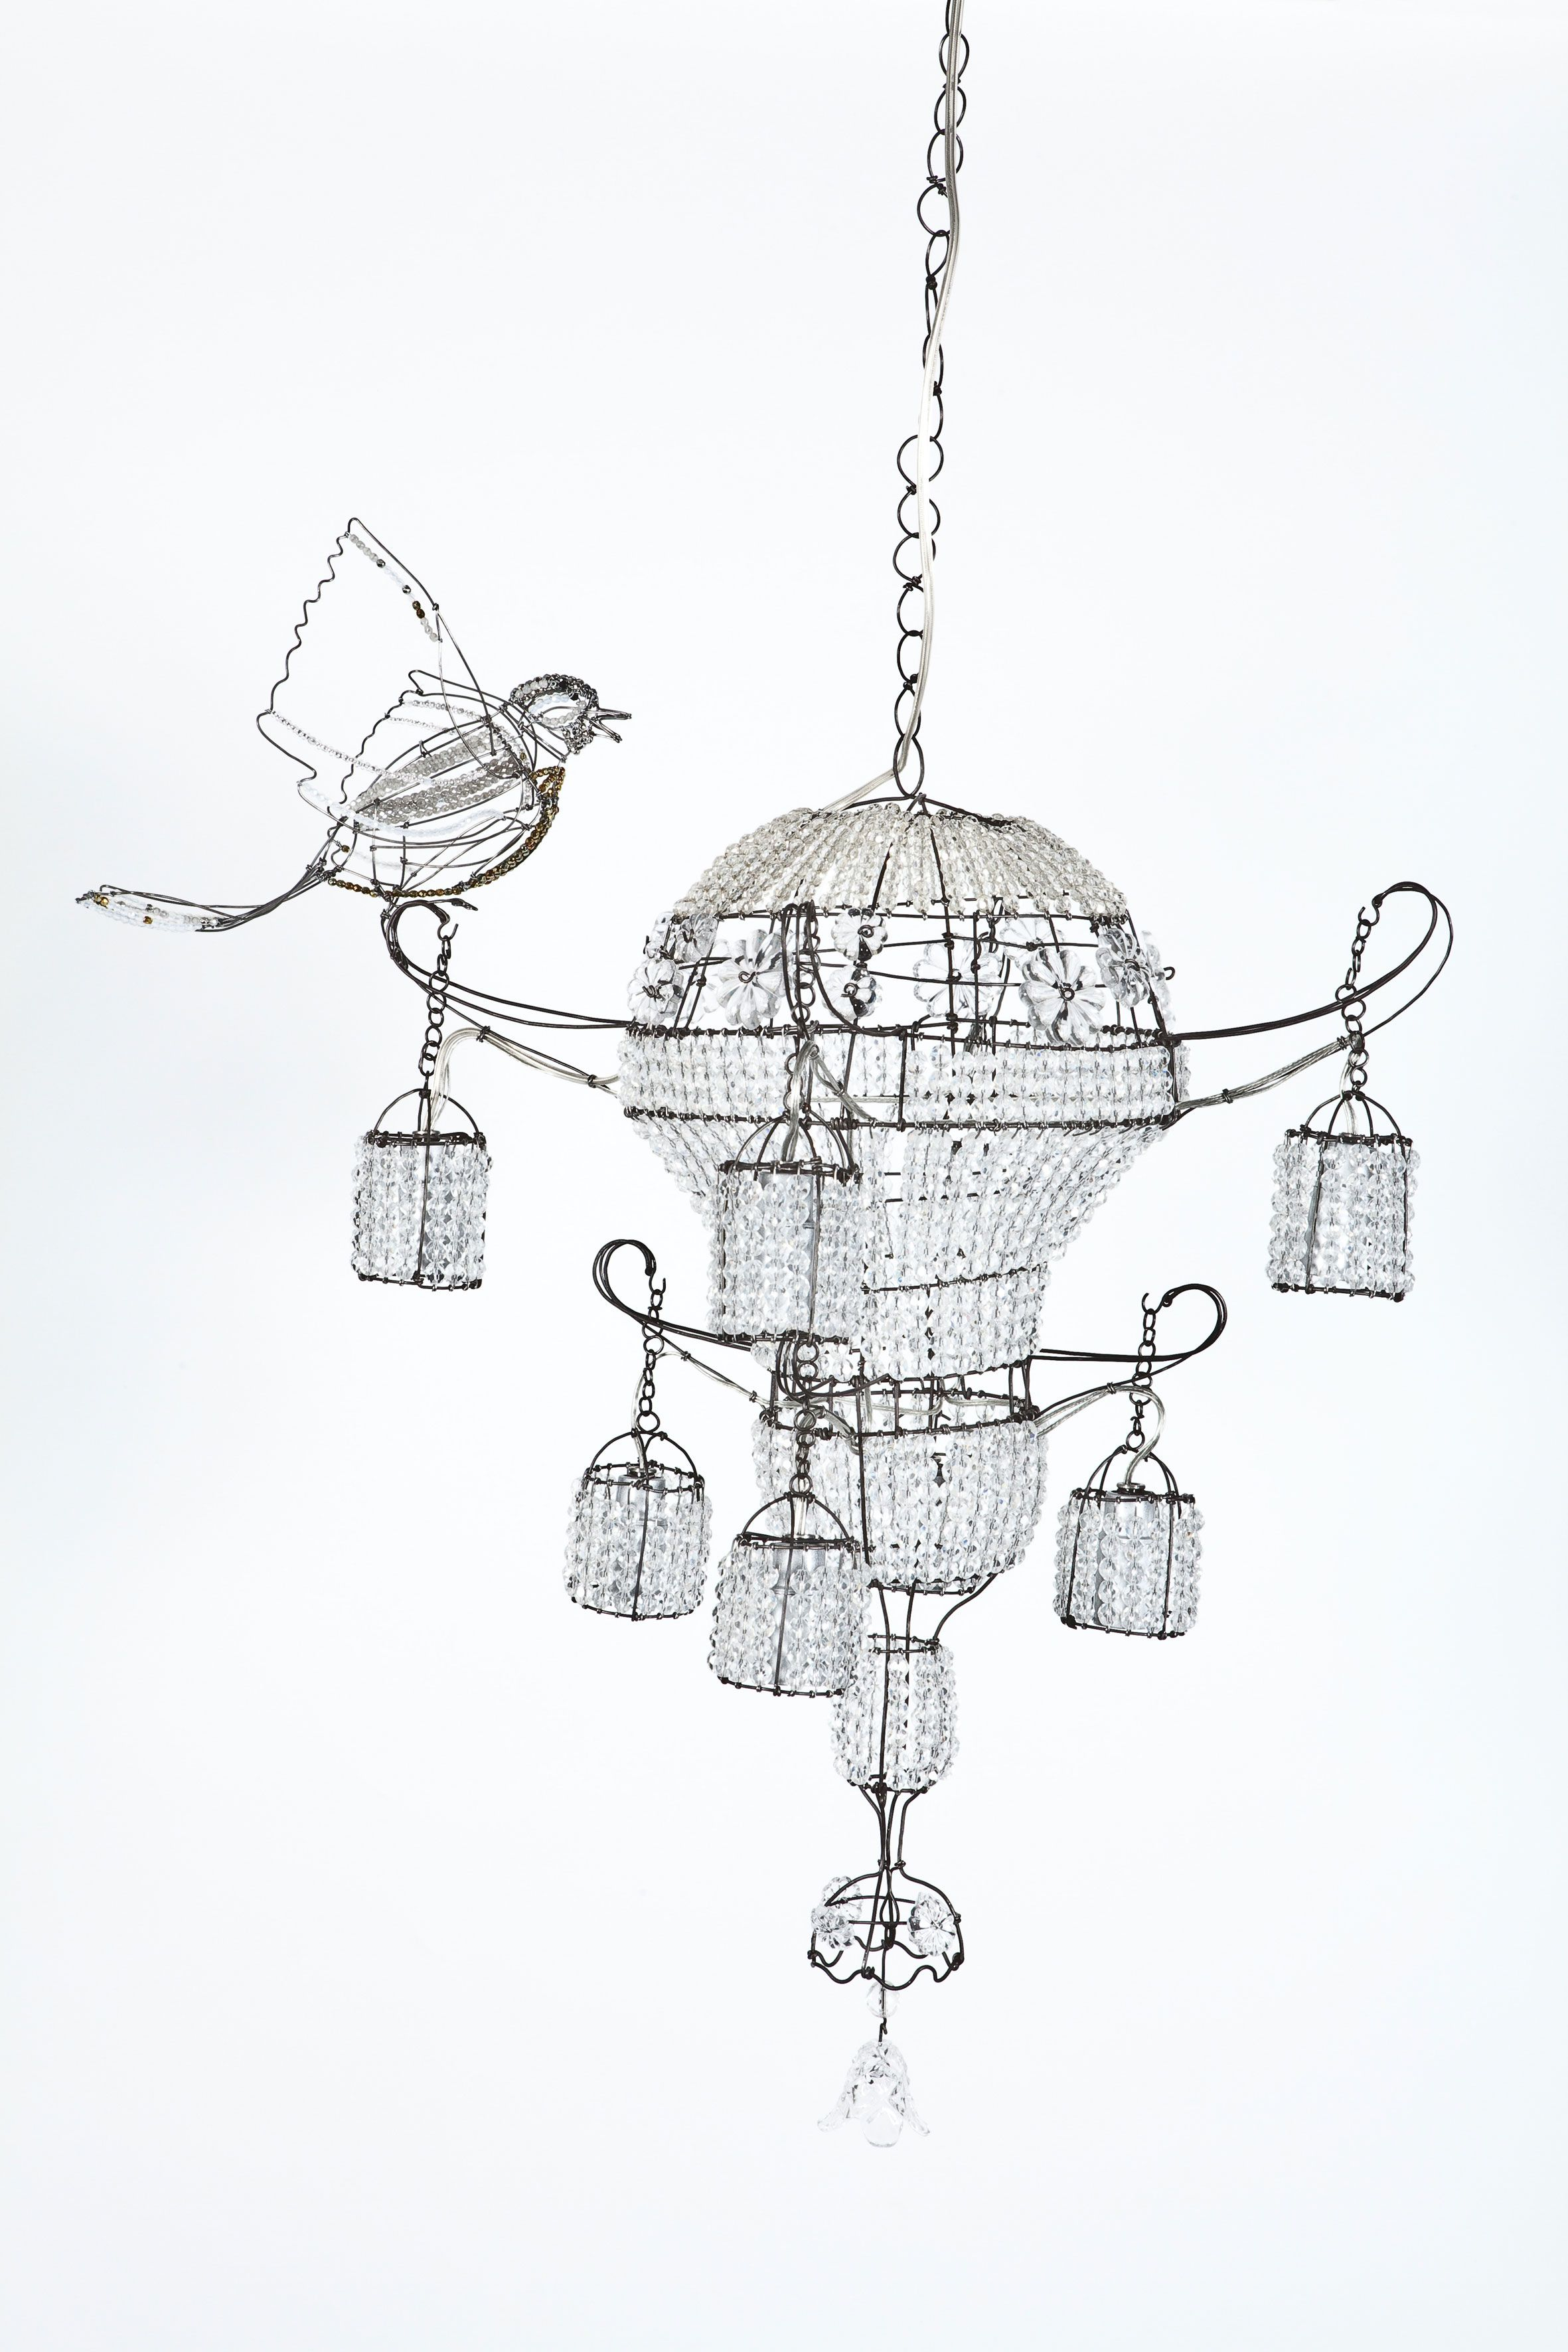 Lustre oiseau marie christophe sweet tweets pinterest wire today i am loving this bird chandelier lisa fontanarosa lustre oiseau by french sculptor marie christophe arubaitofo Image collections